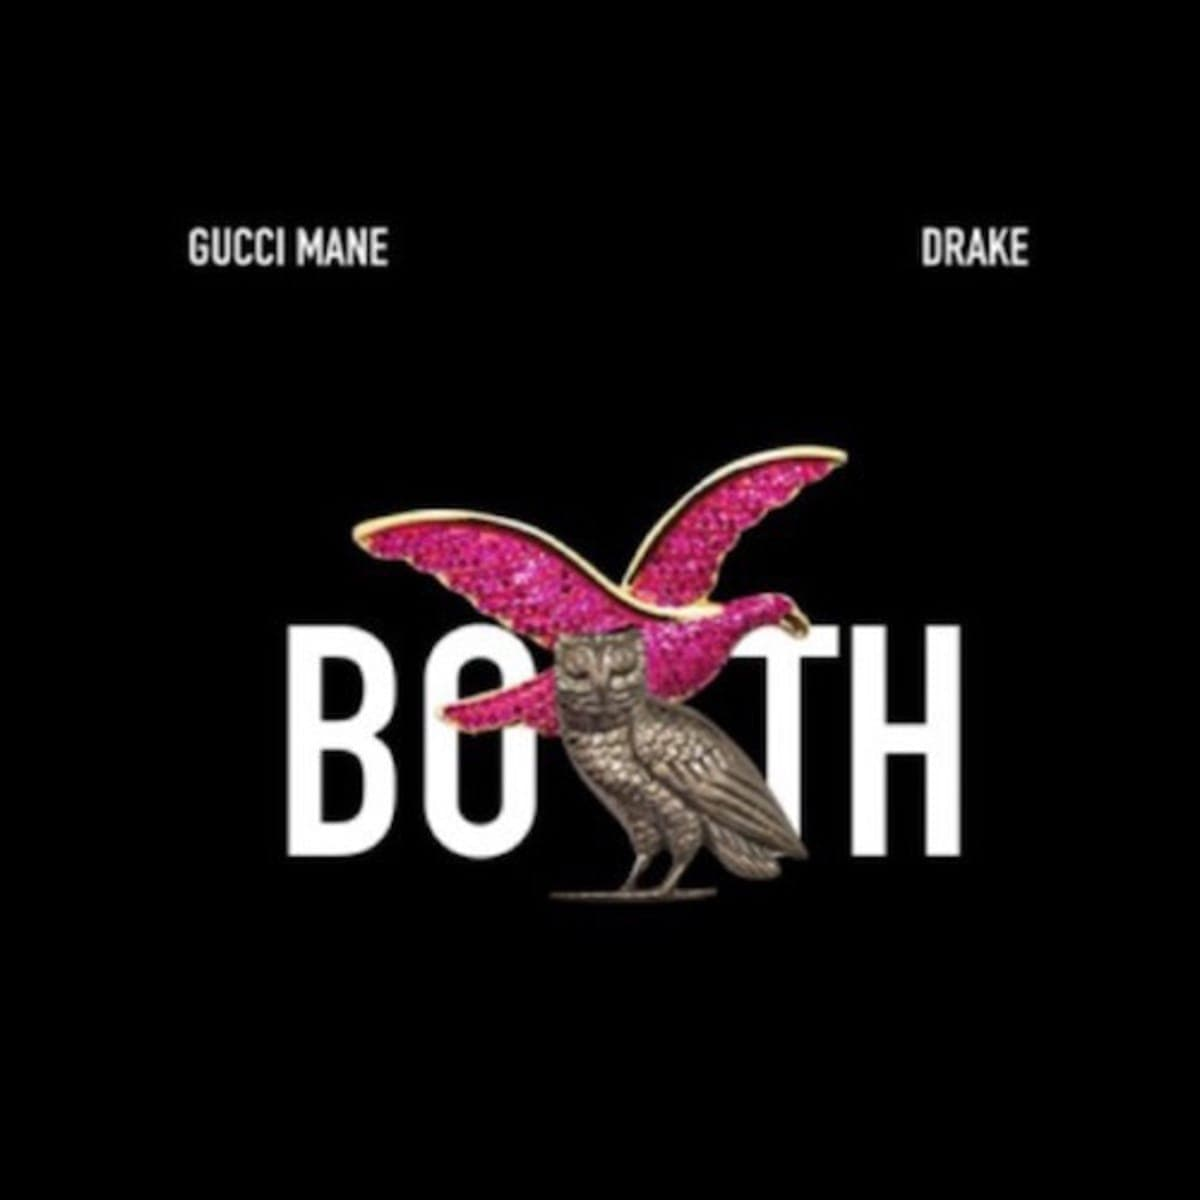 Both - Gucci Mane & Drake